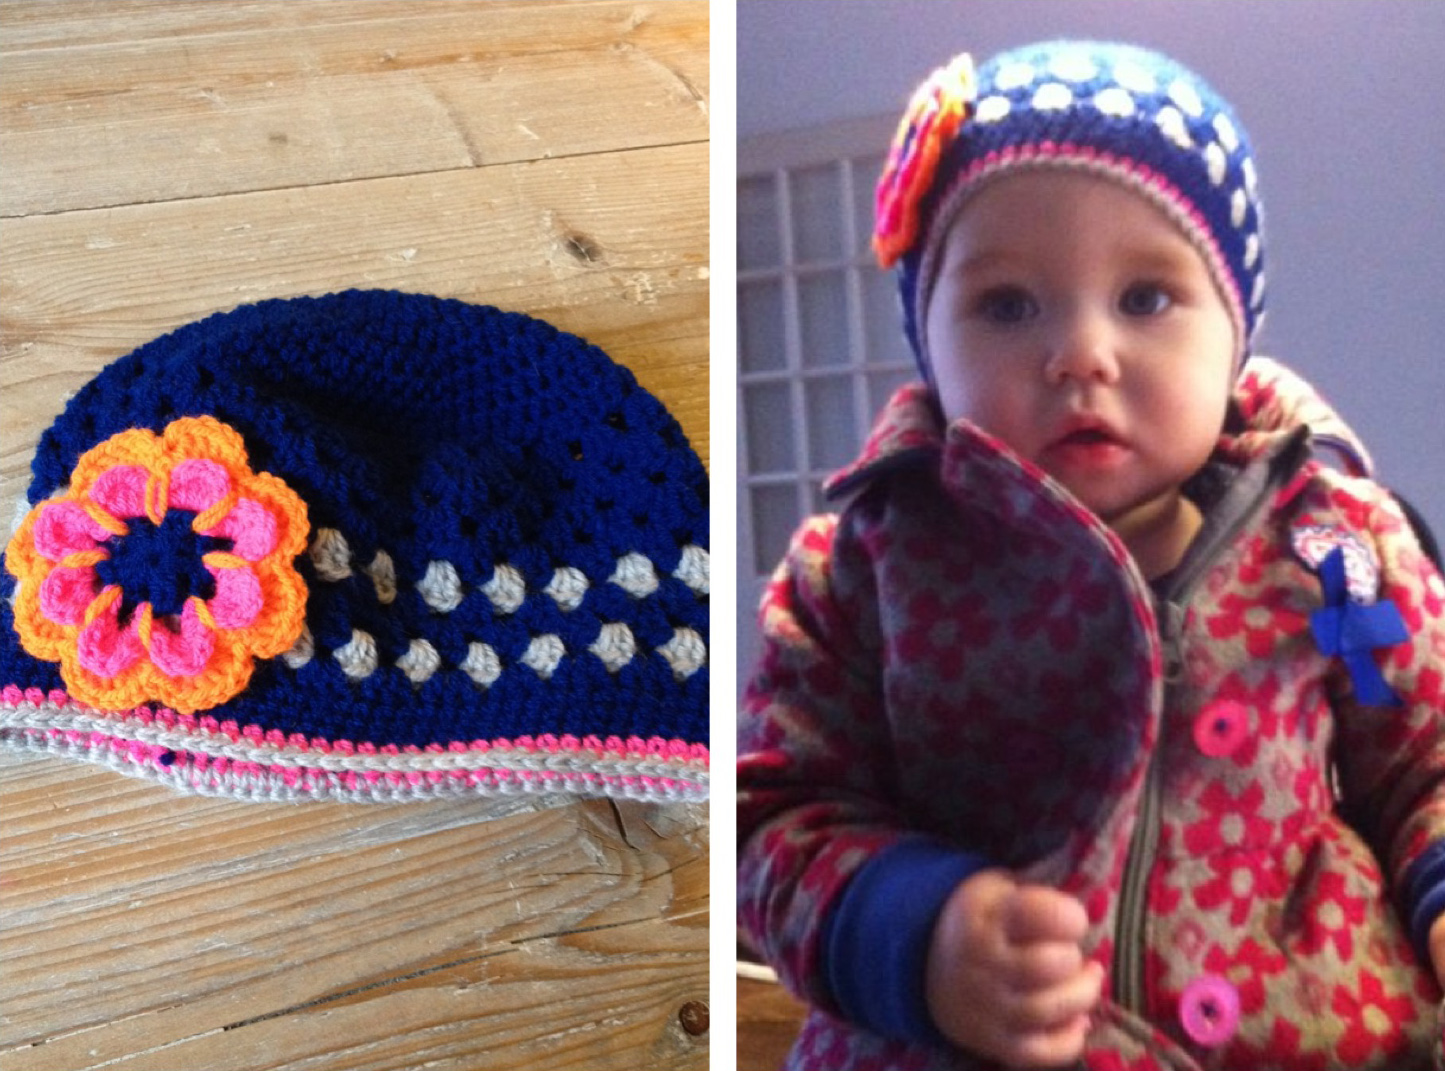 Crochet Baby Beanie 9 Months Size Bypetra